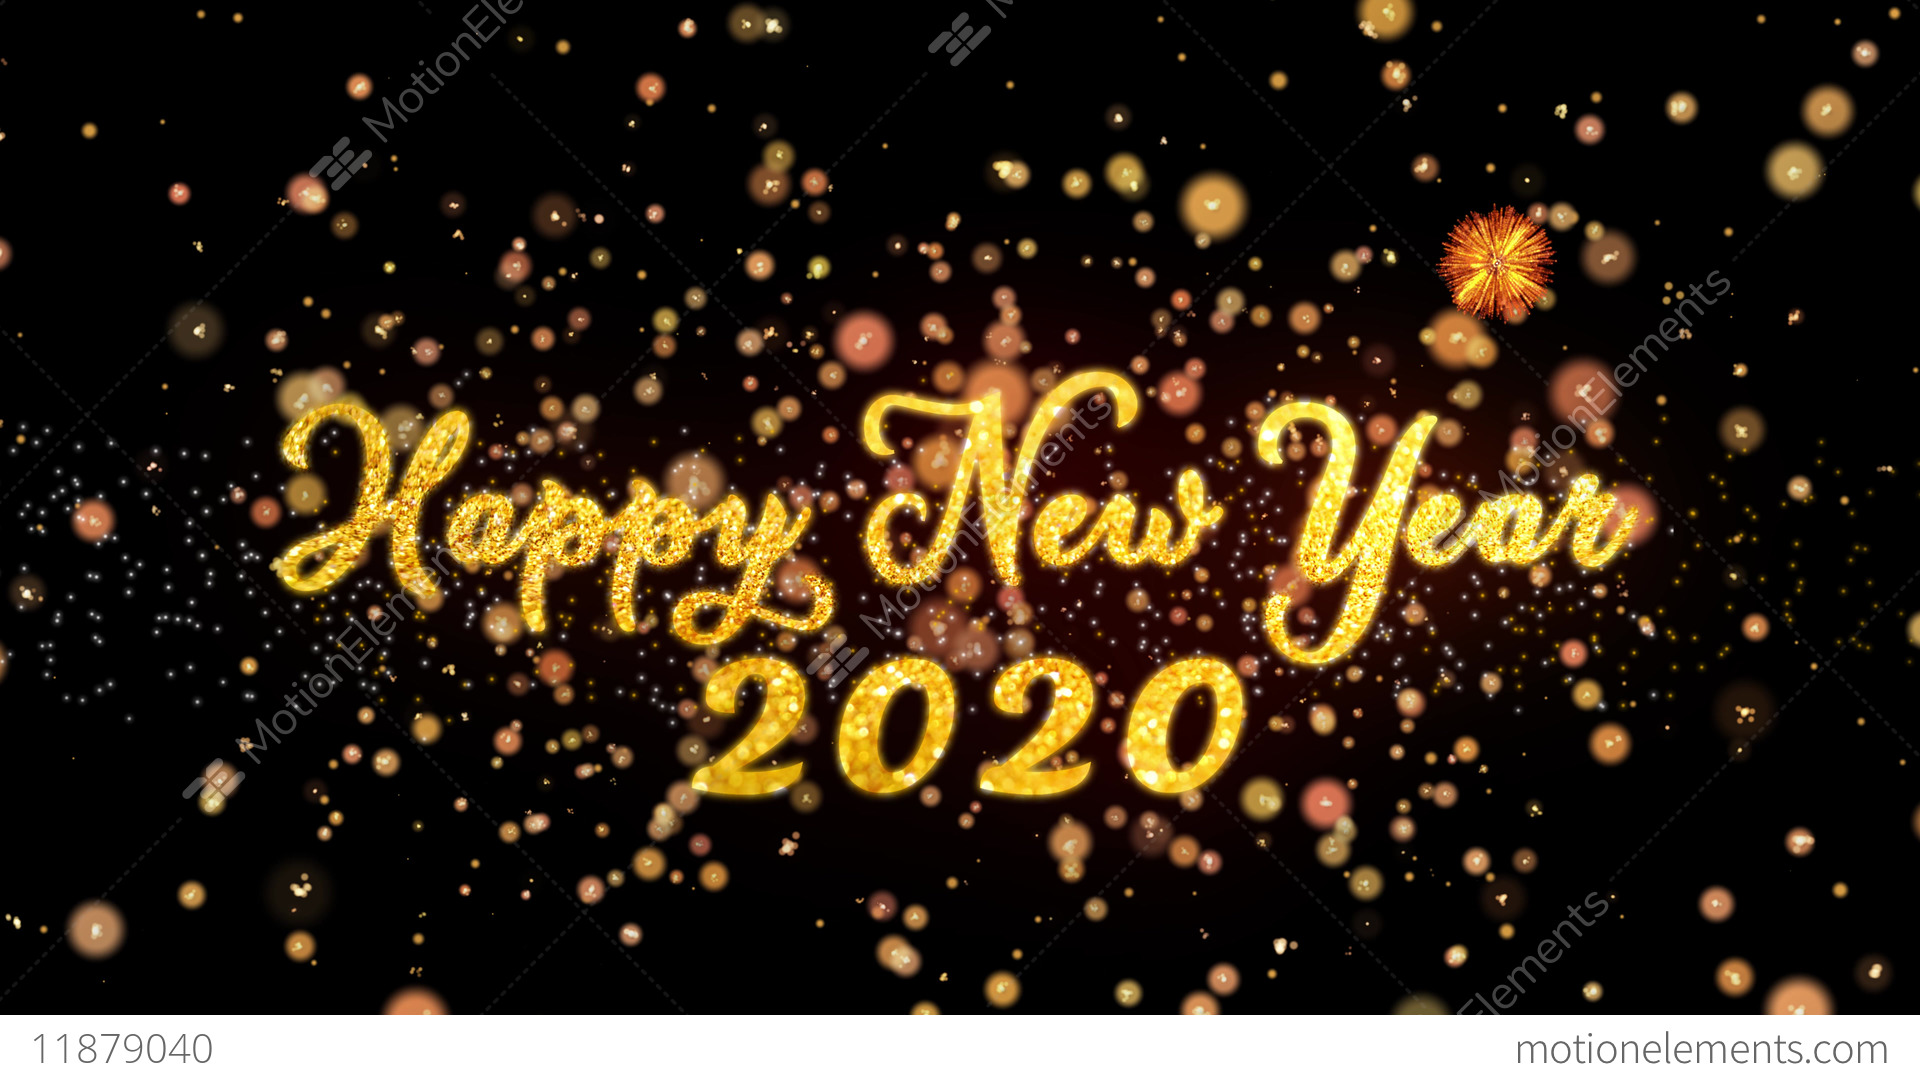 Happy new year photo video 2020